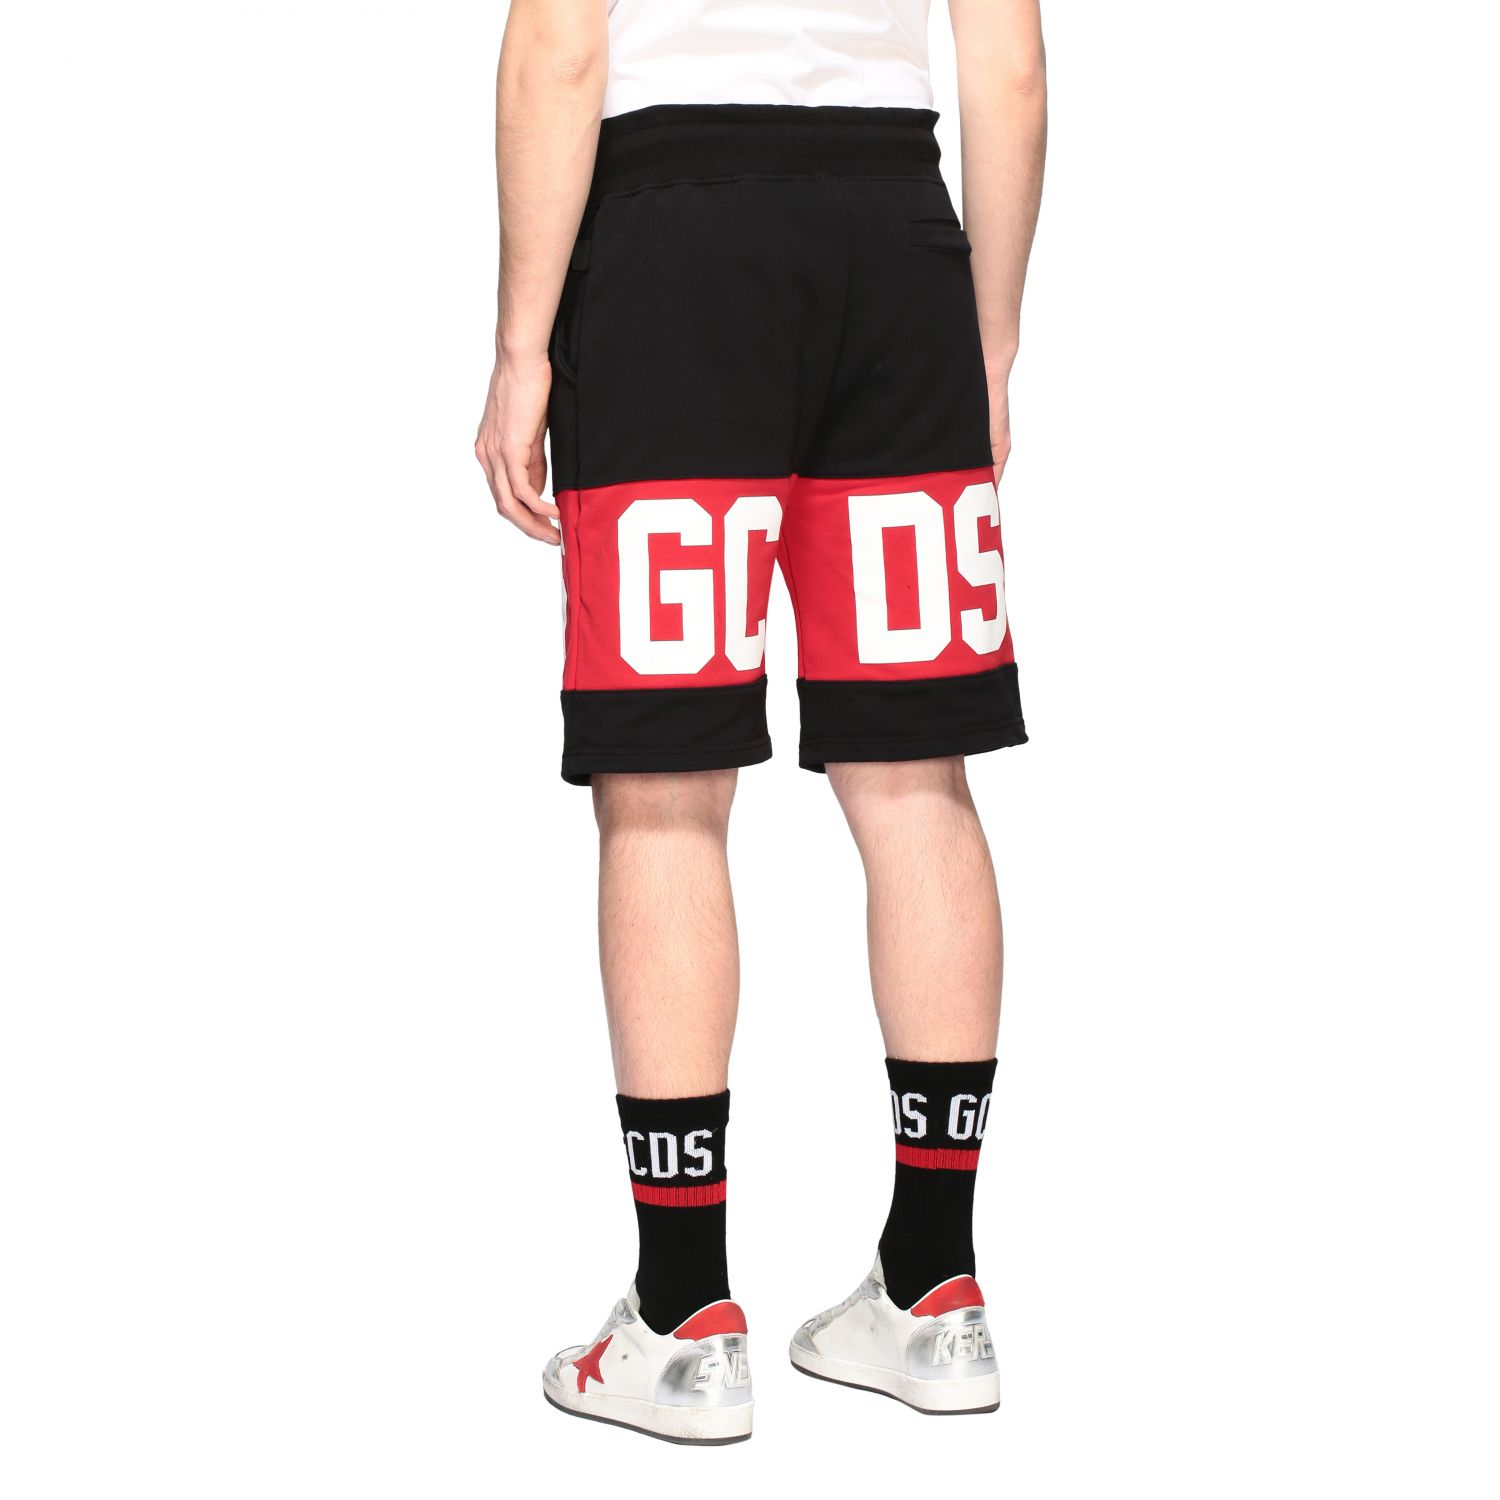 Short men Gcds black 3